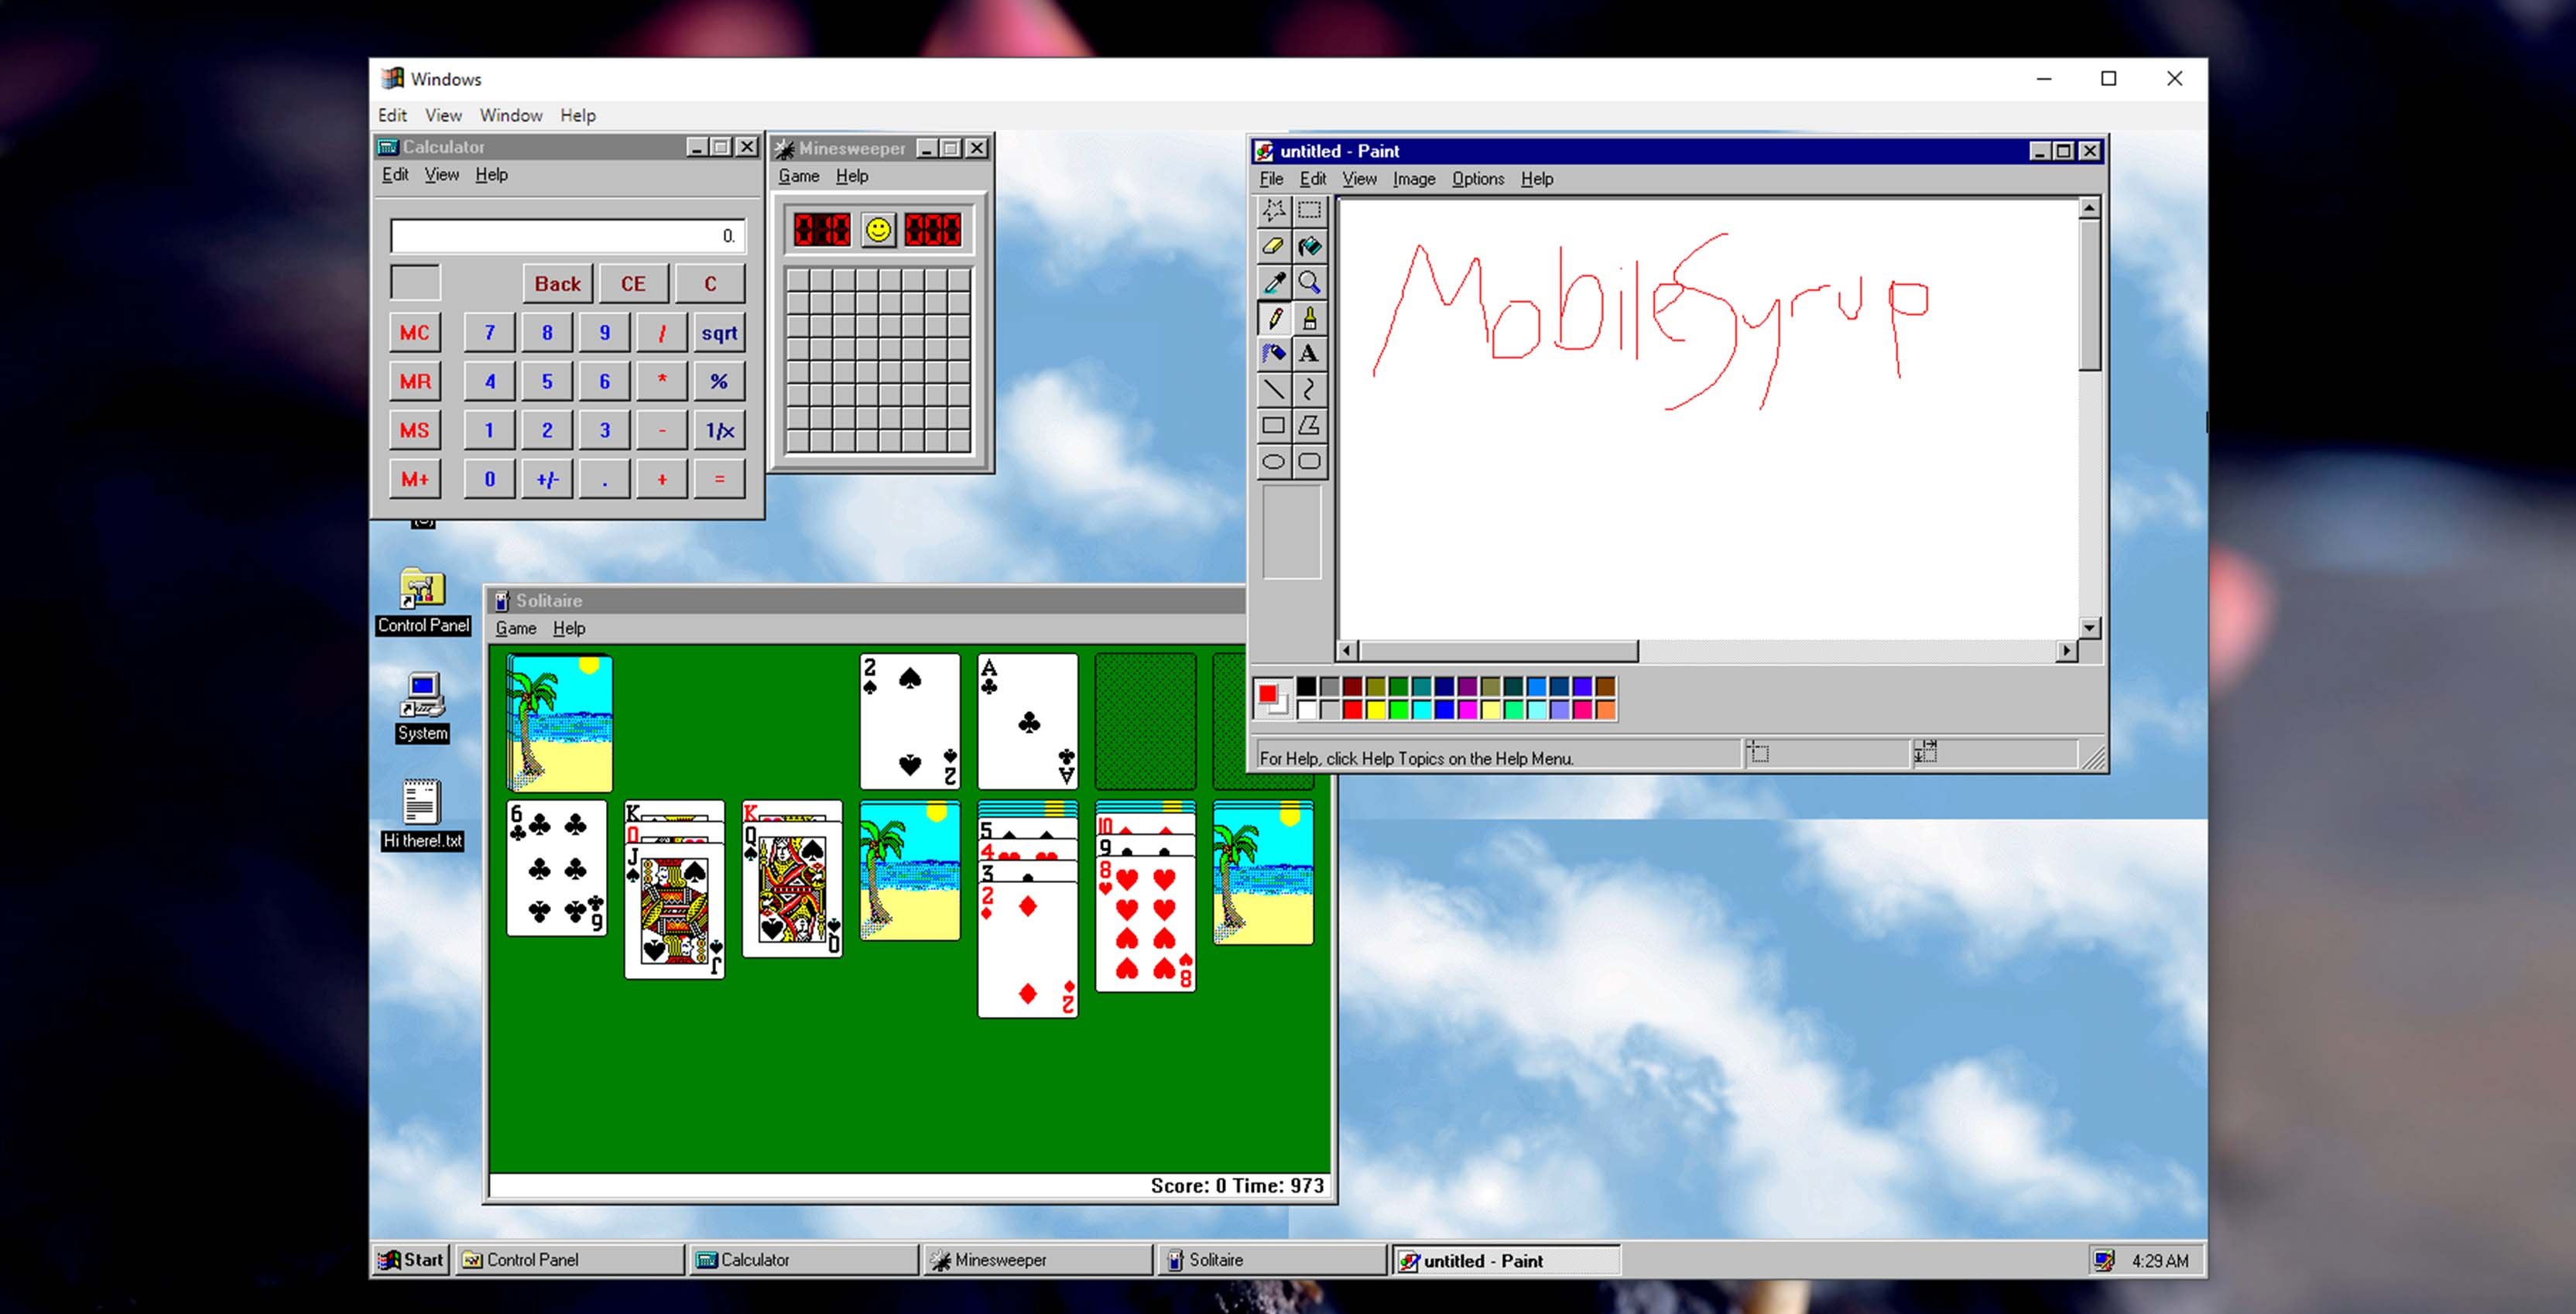 Relive your glory days with this Windows 95 application